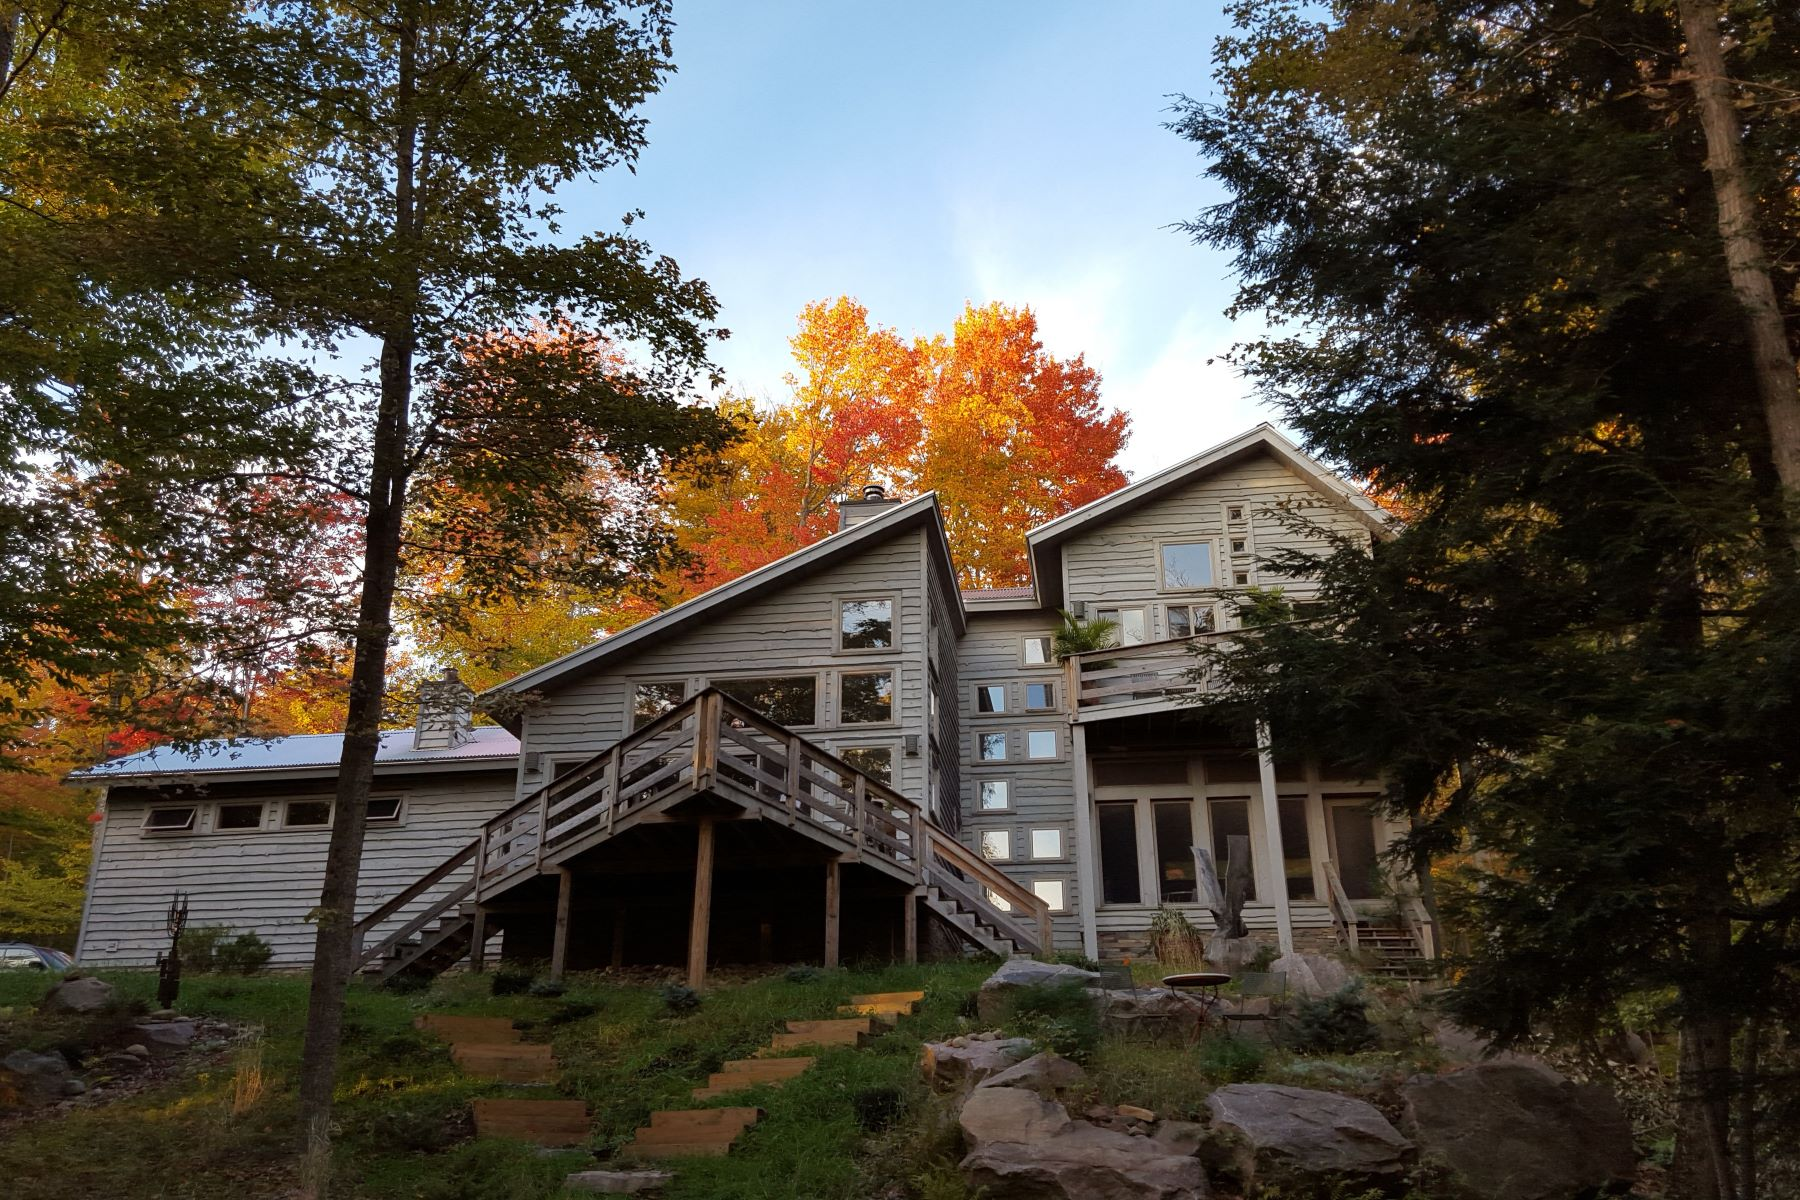 Single Family Homes for Active at Rustic Loft Style Lake Home In The Adirondacks 184 Raquette Flow Road Piercefield, New York 12973 United States